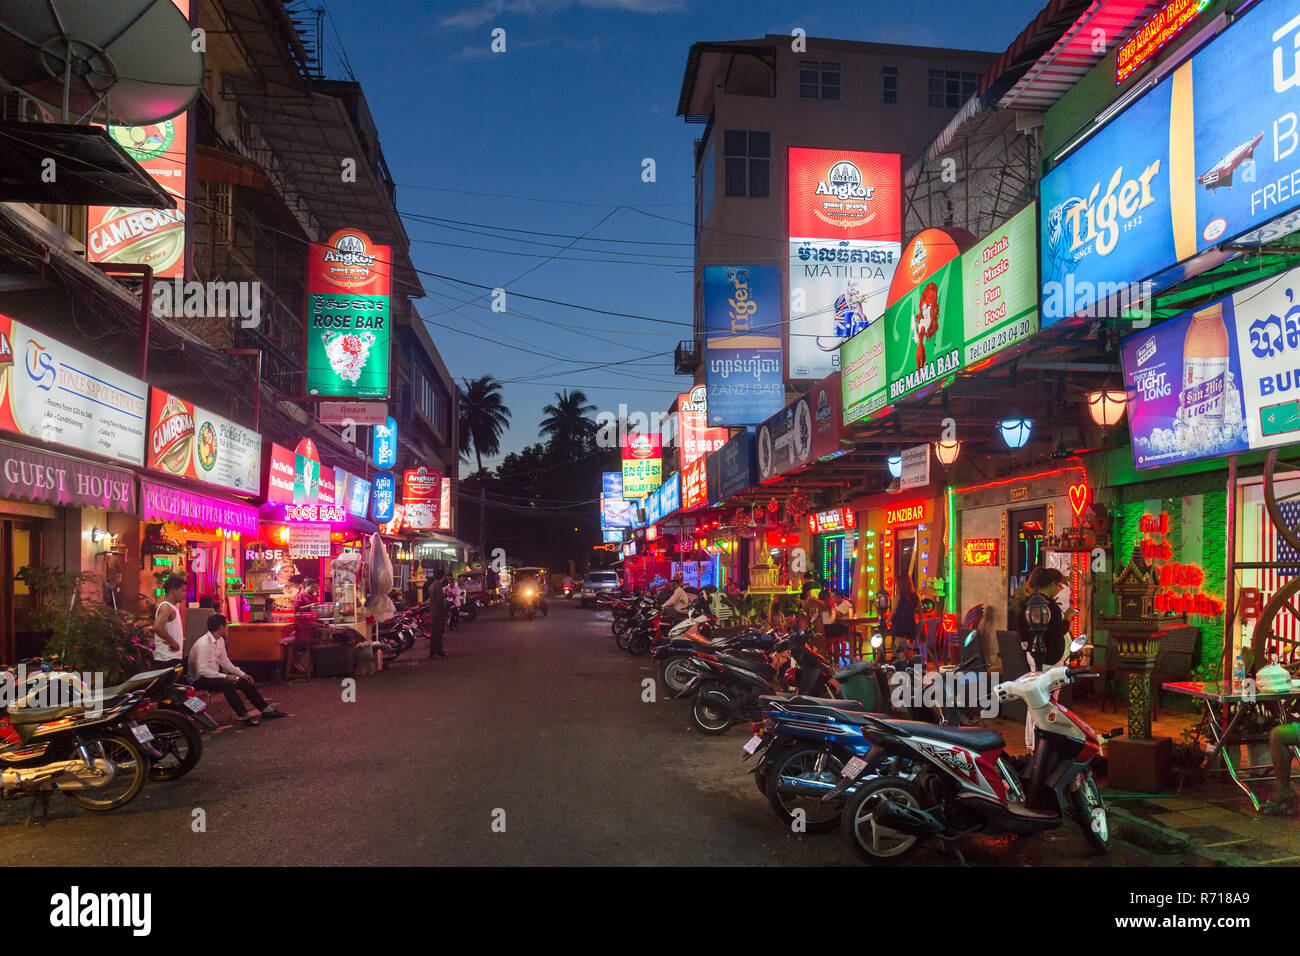 Nightlife, bars, clubs, Street 104, Seng Thuong, Phnom Penh